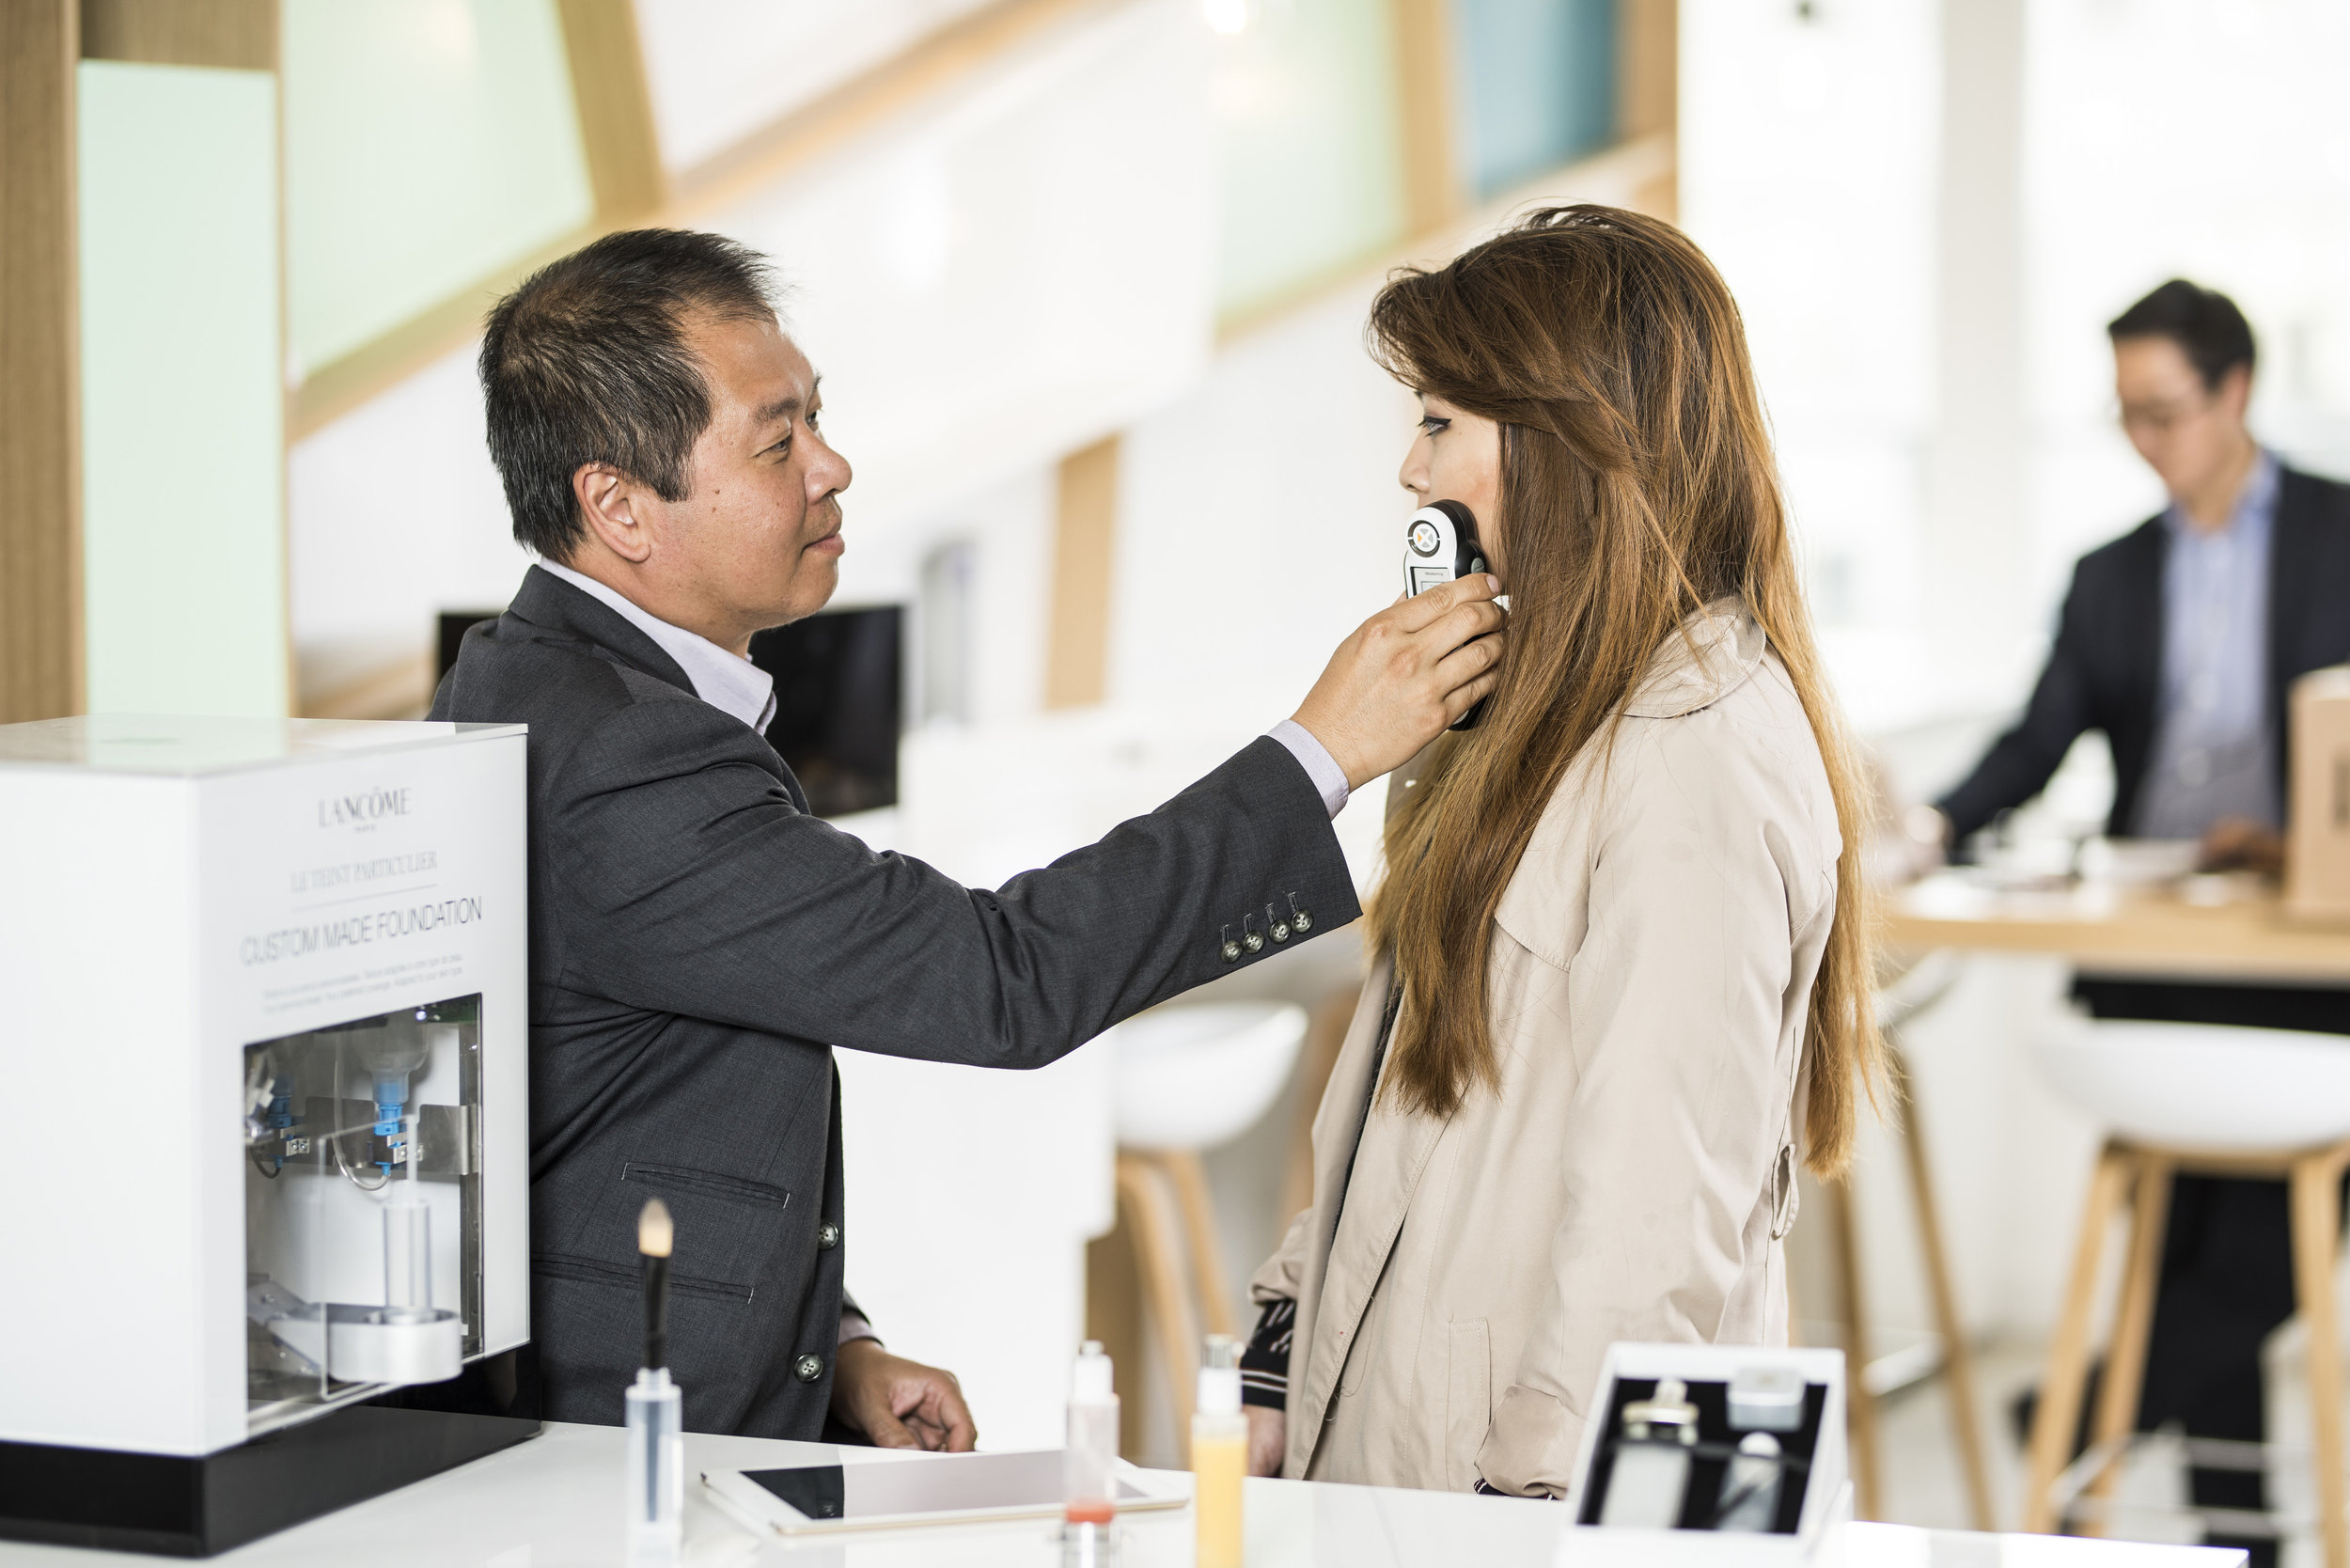 BEAUTY tECHSERVICES - Introduce the next generation service and innovation to create new ways for consumers to discover, engage, and experience our brands and products.